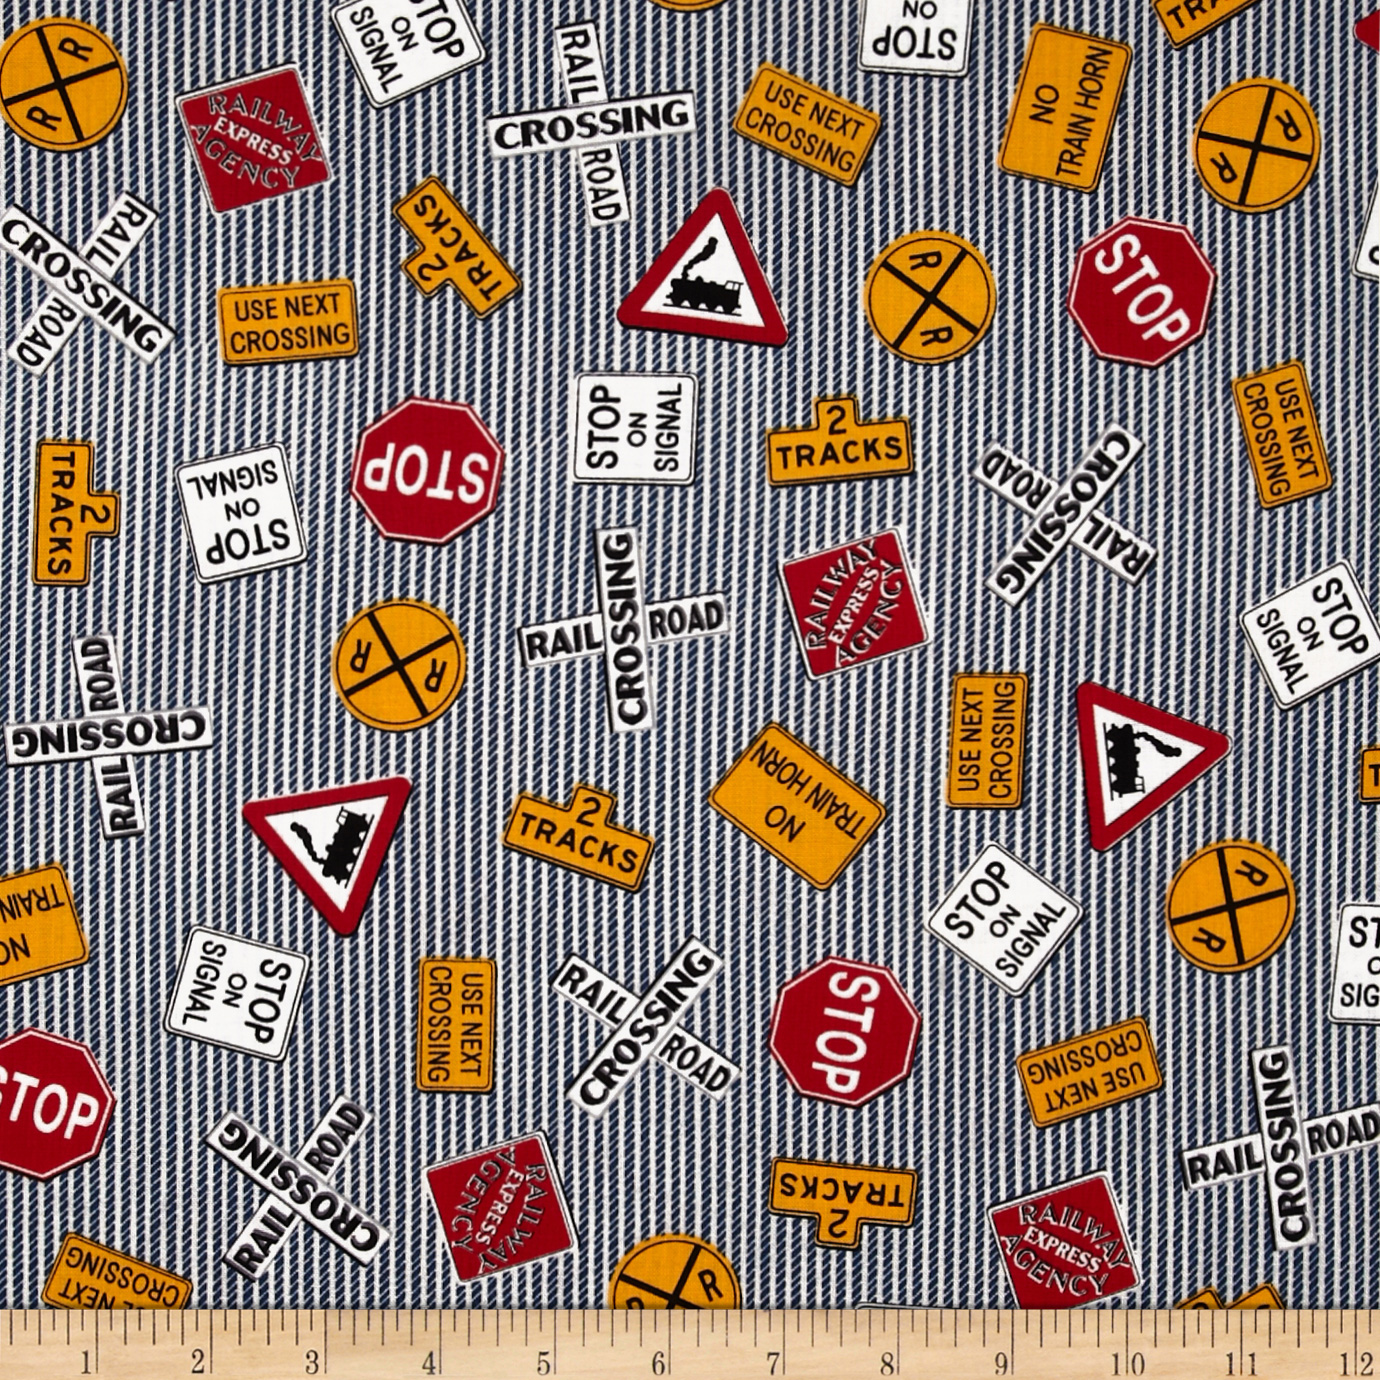 All Aboard Railroad Signs Denim Fabric